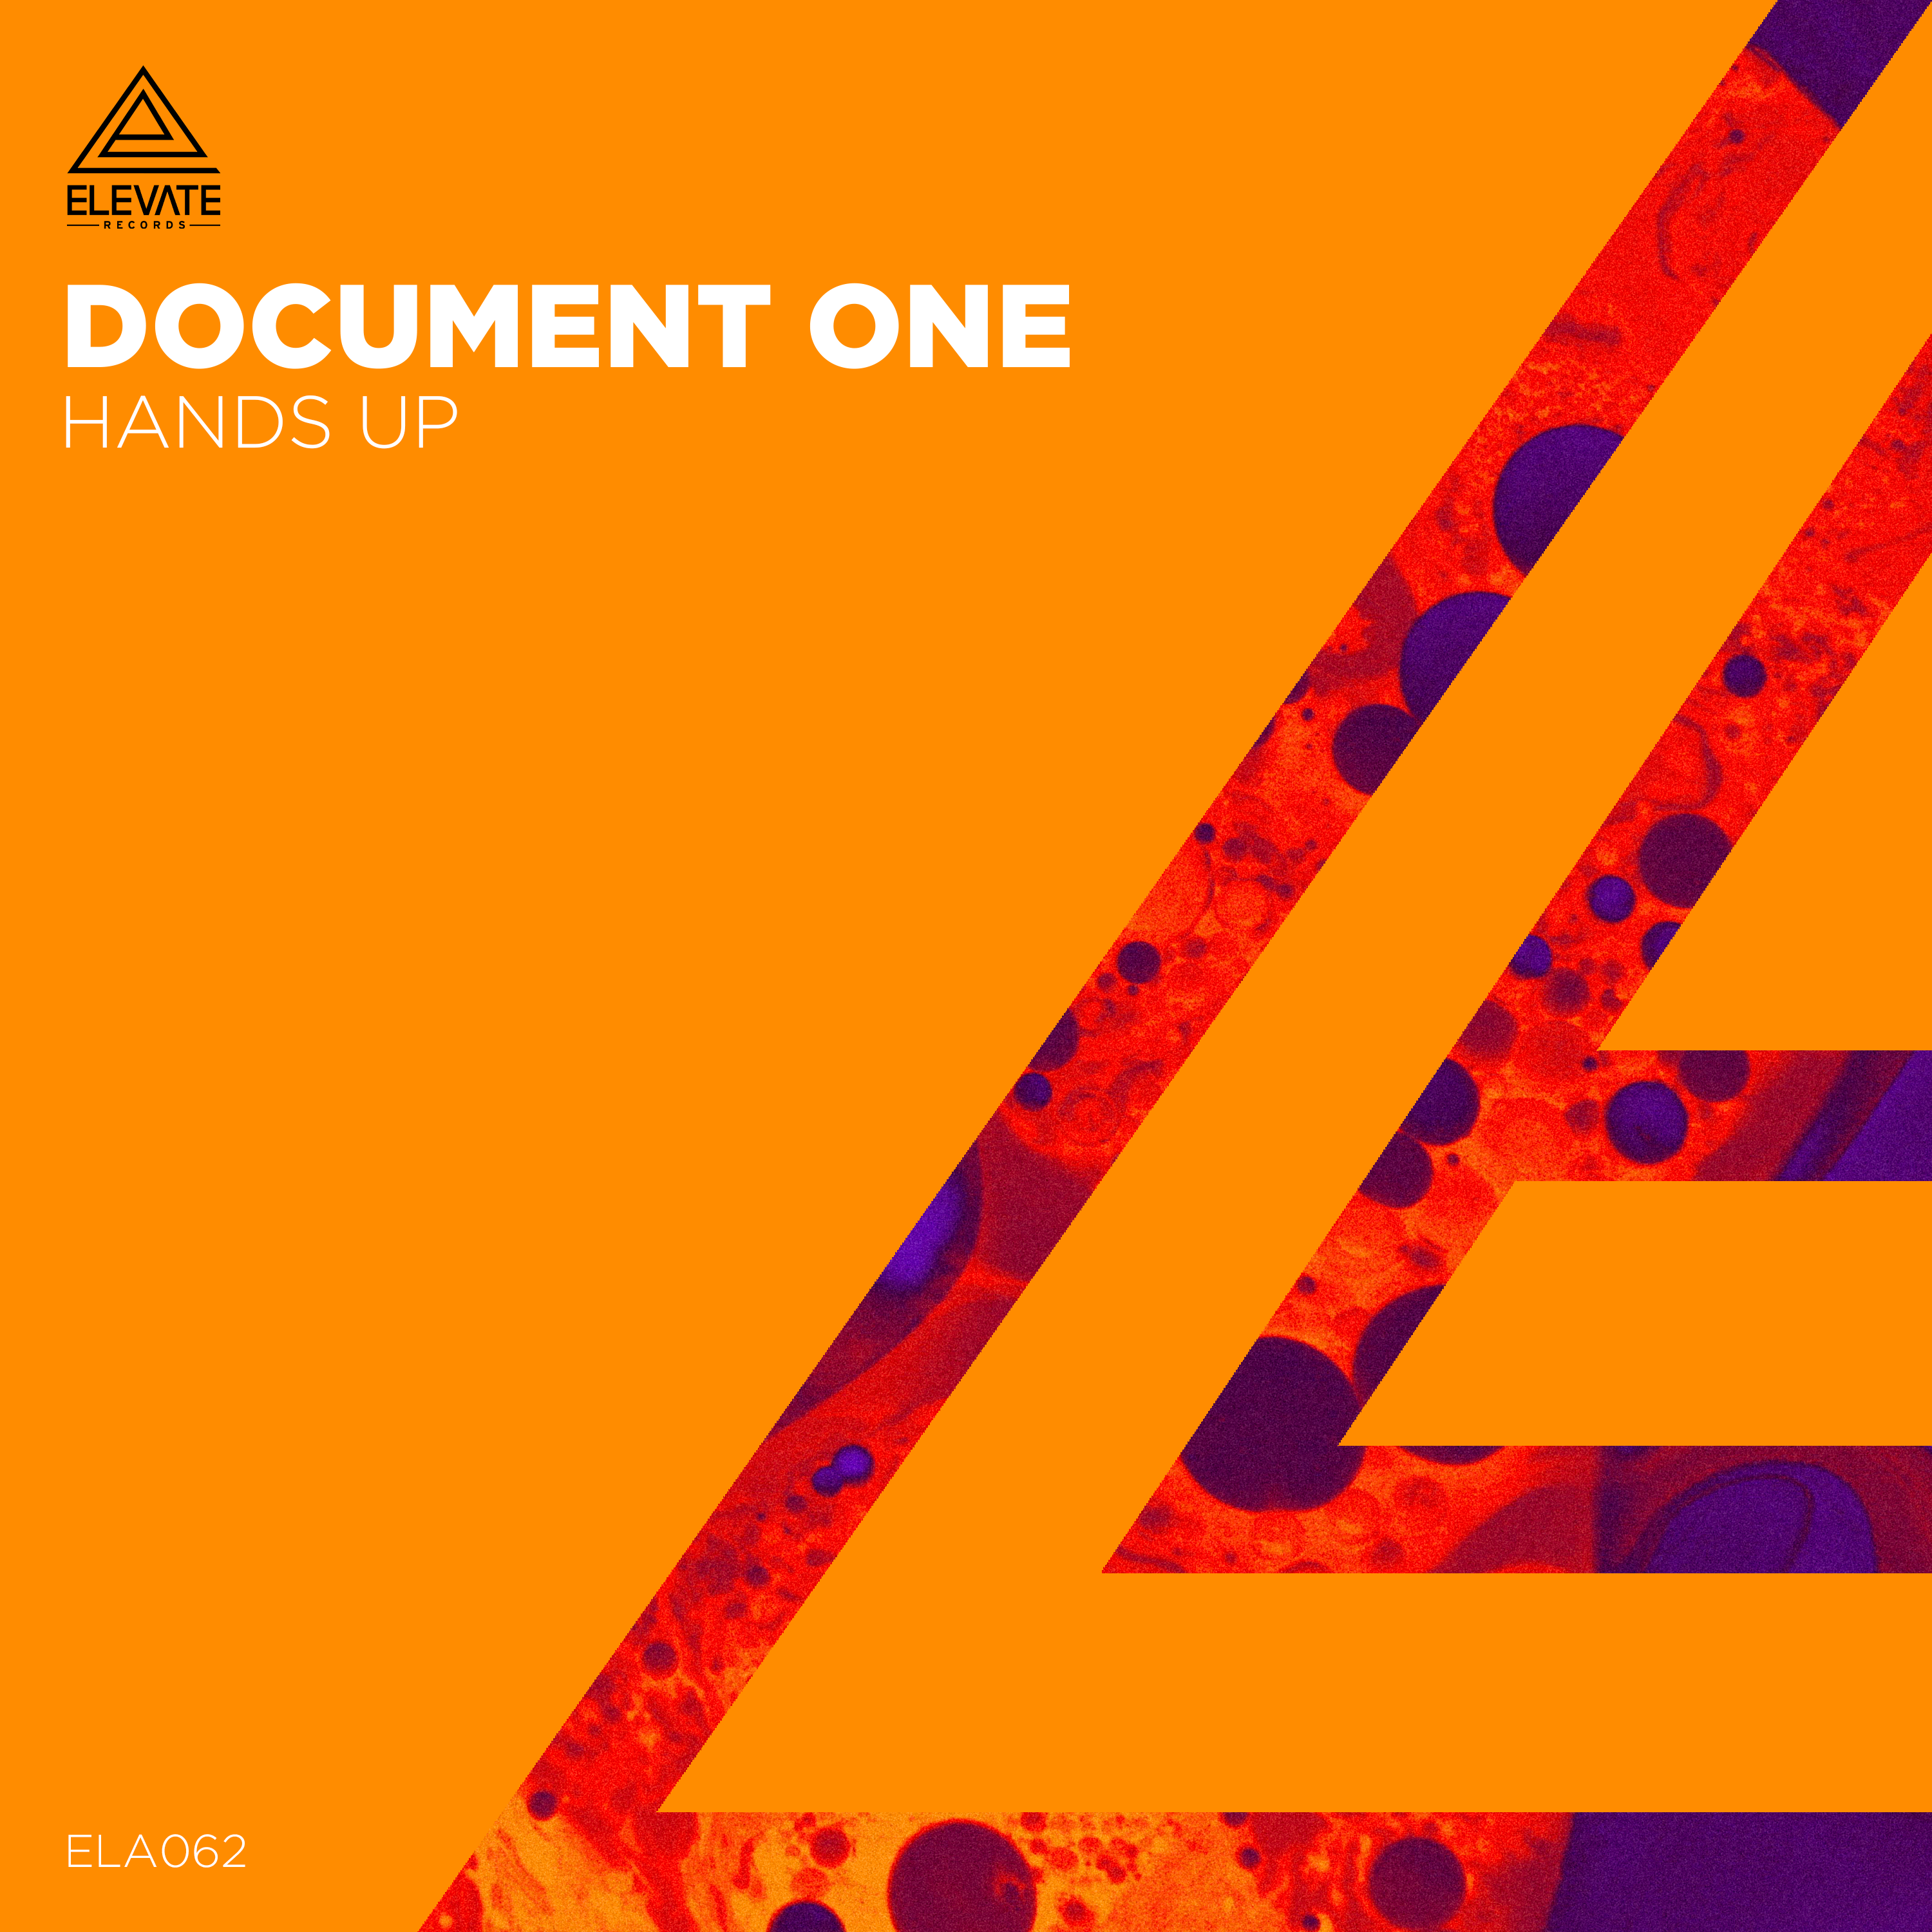 Document One - Hands Up